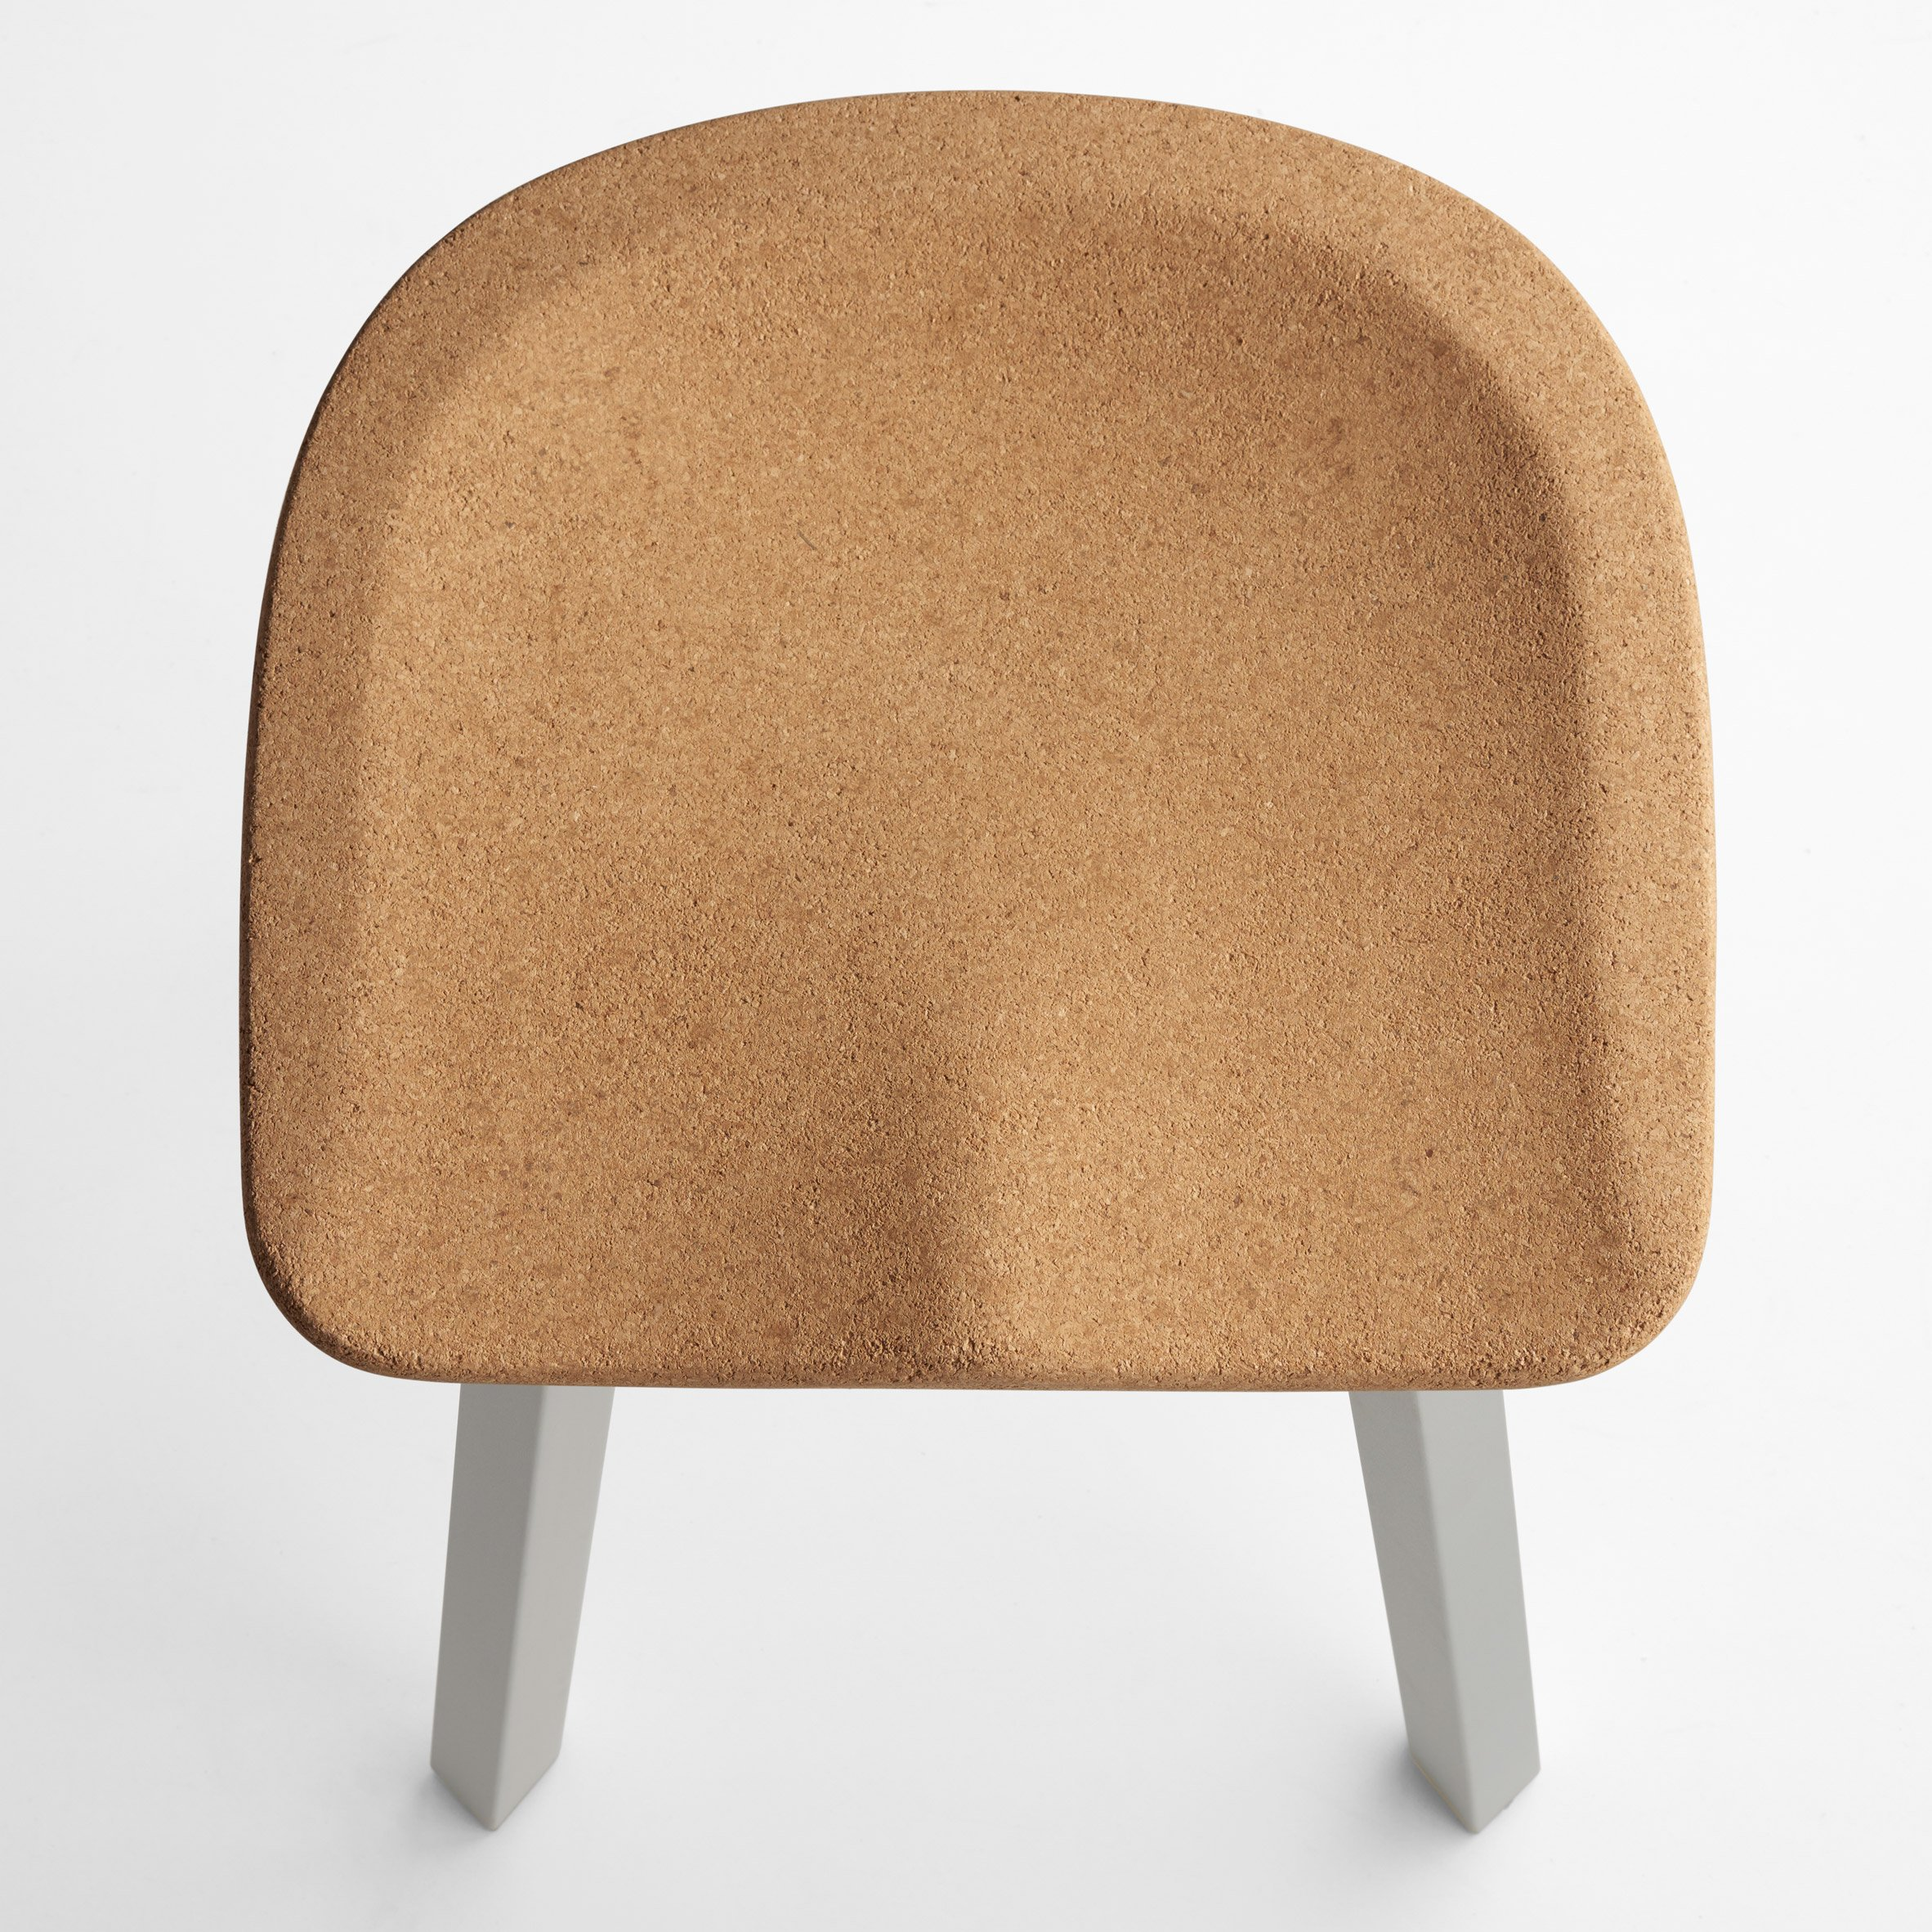 Nendo adds cork seat to its sustainable range of SU stools for Emeco